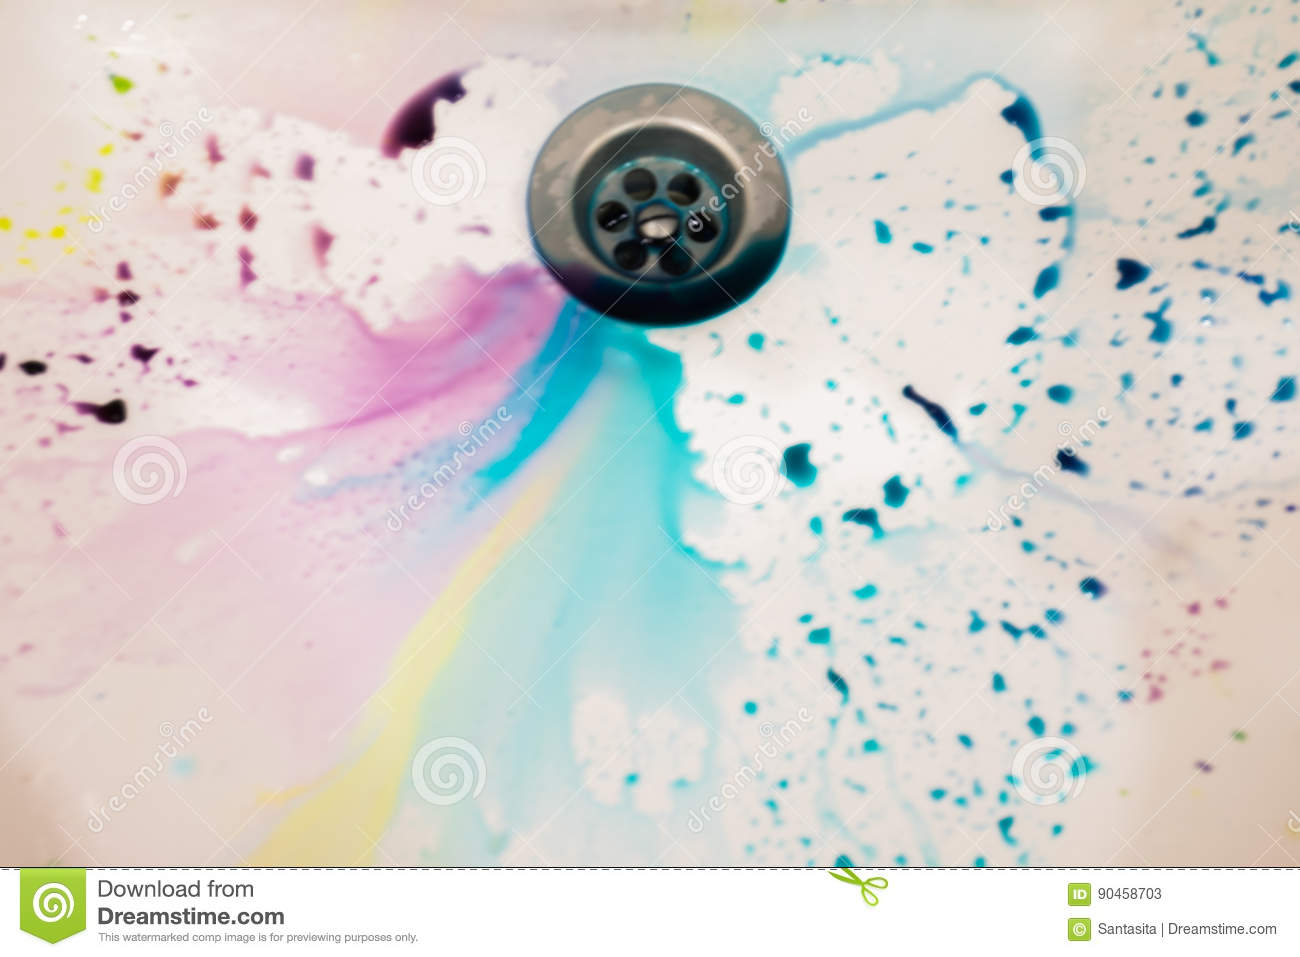 in white ceramic sink poured a lot of different colors to paint eggs for easter beautiful background and almost a rainbow stock image image of desktop lilac 90458703